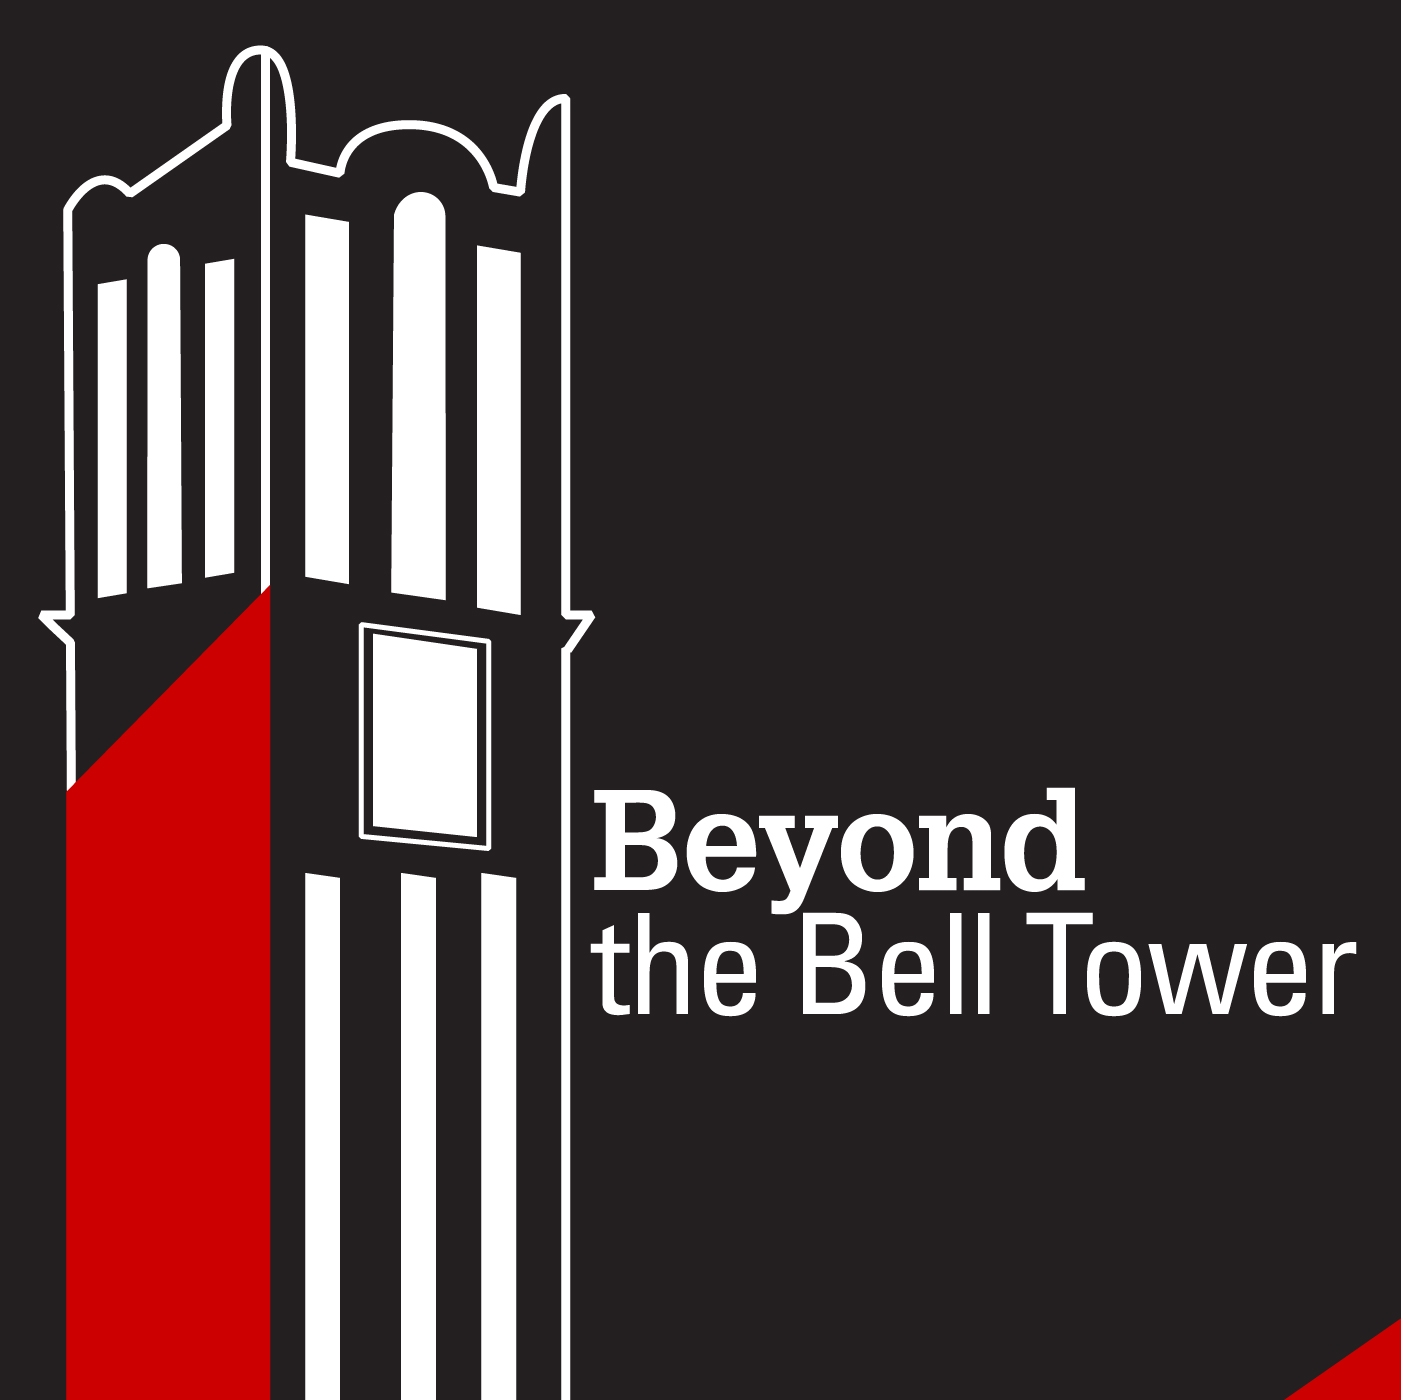 Beyond the Bell Tower